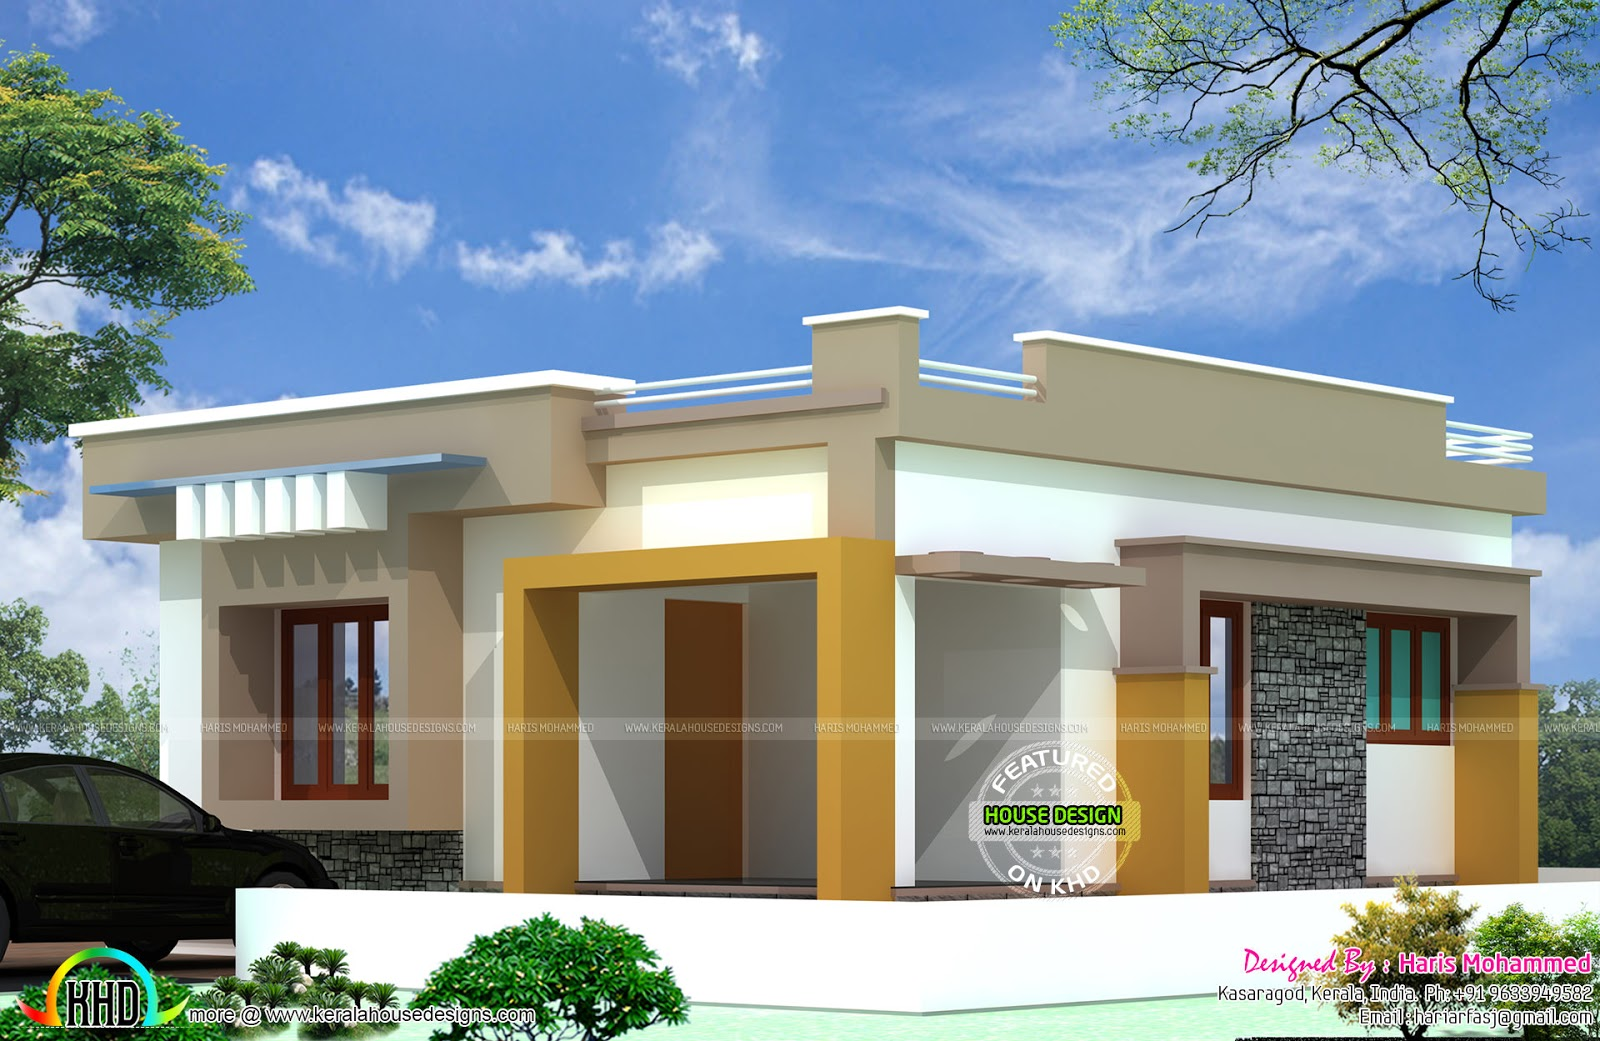 10 lakhs budget house plan kerala home design and floor plans Home design and budget